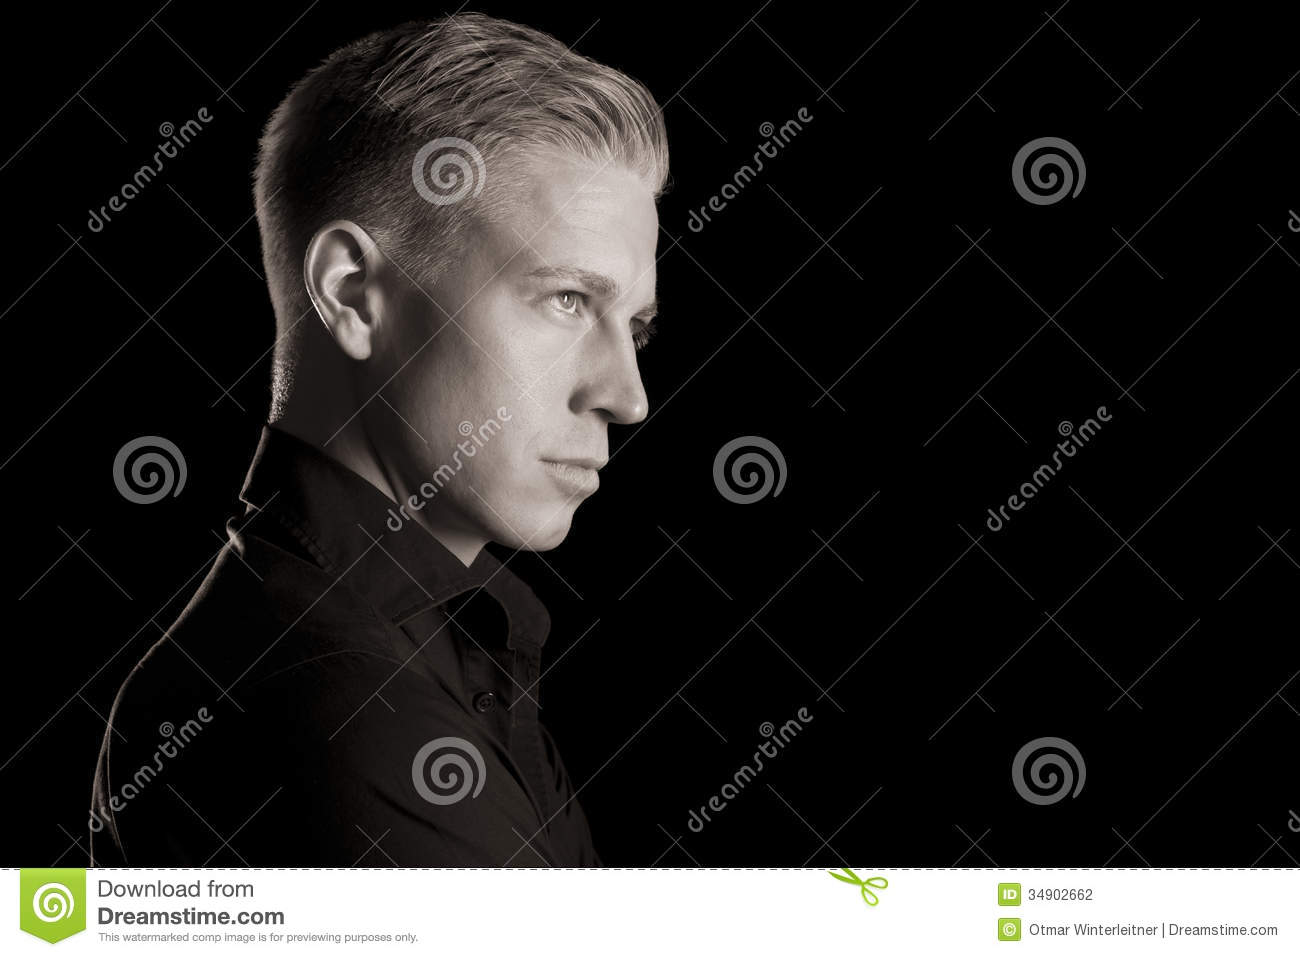 Black and white profile portrait of attractive man low key